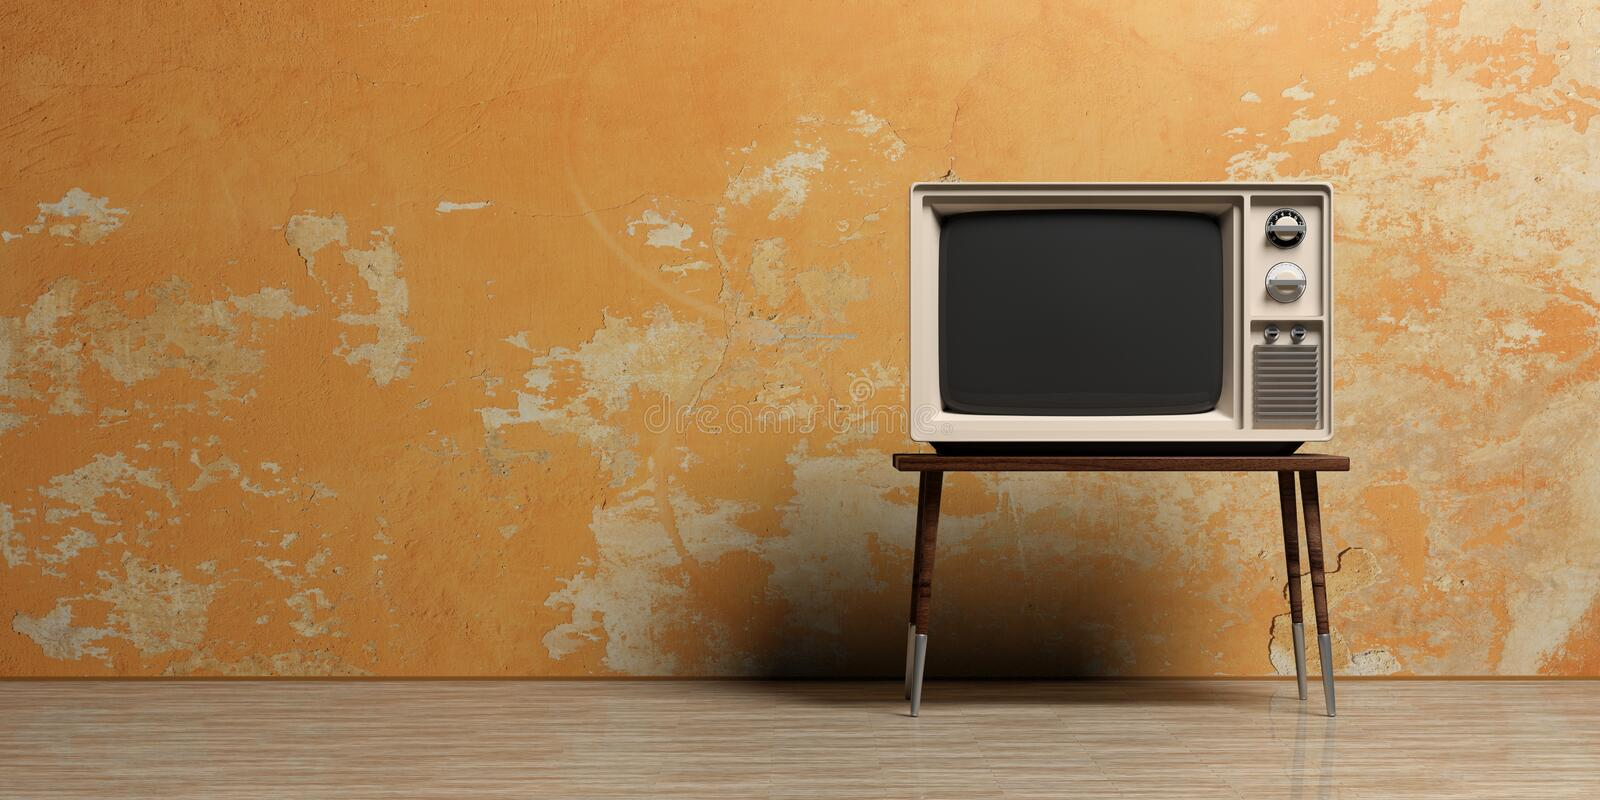 Vintage TV In An Empty Room  3d Illustration Stock